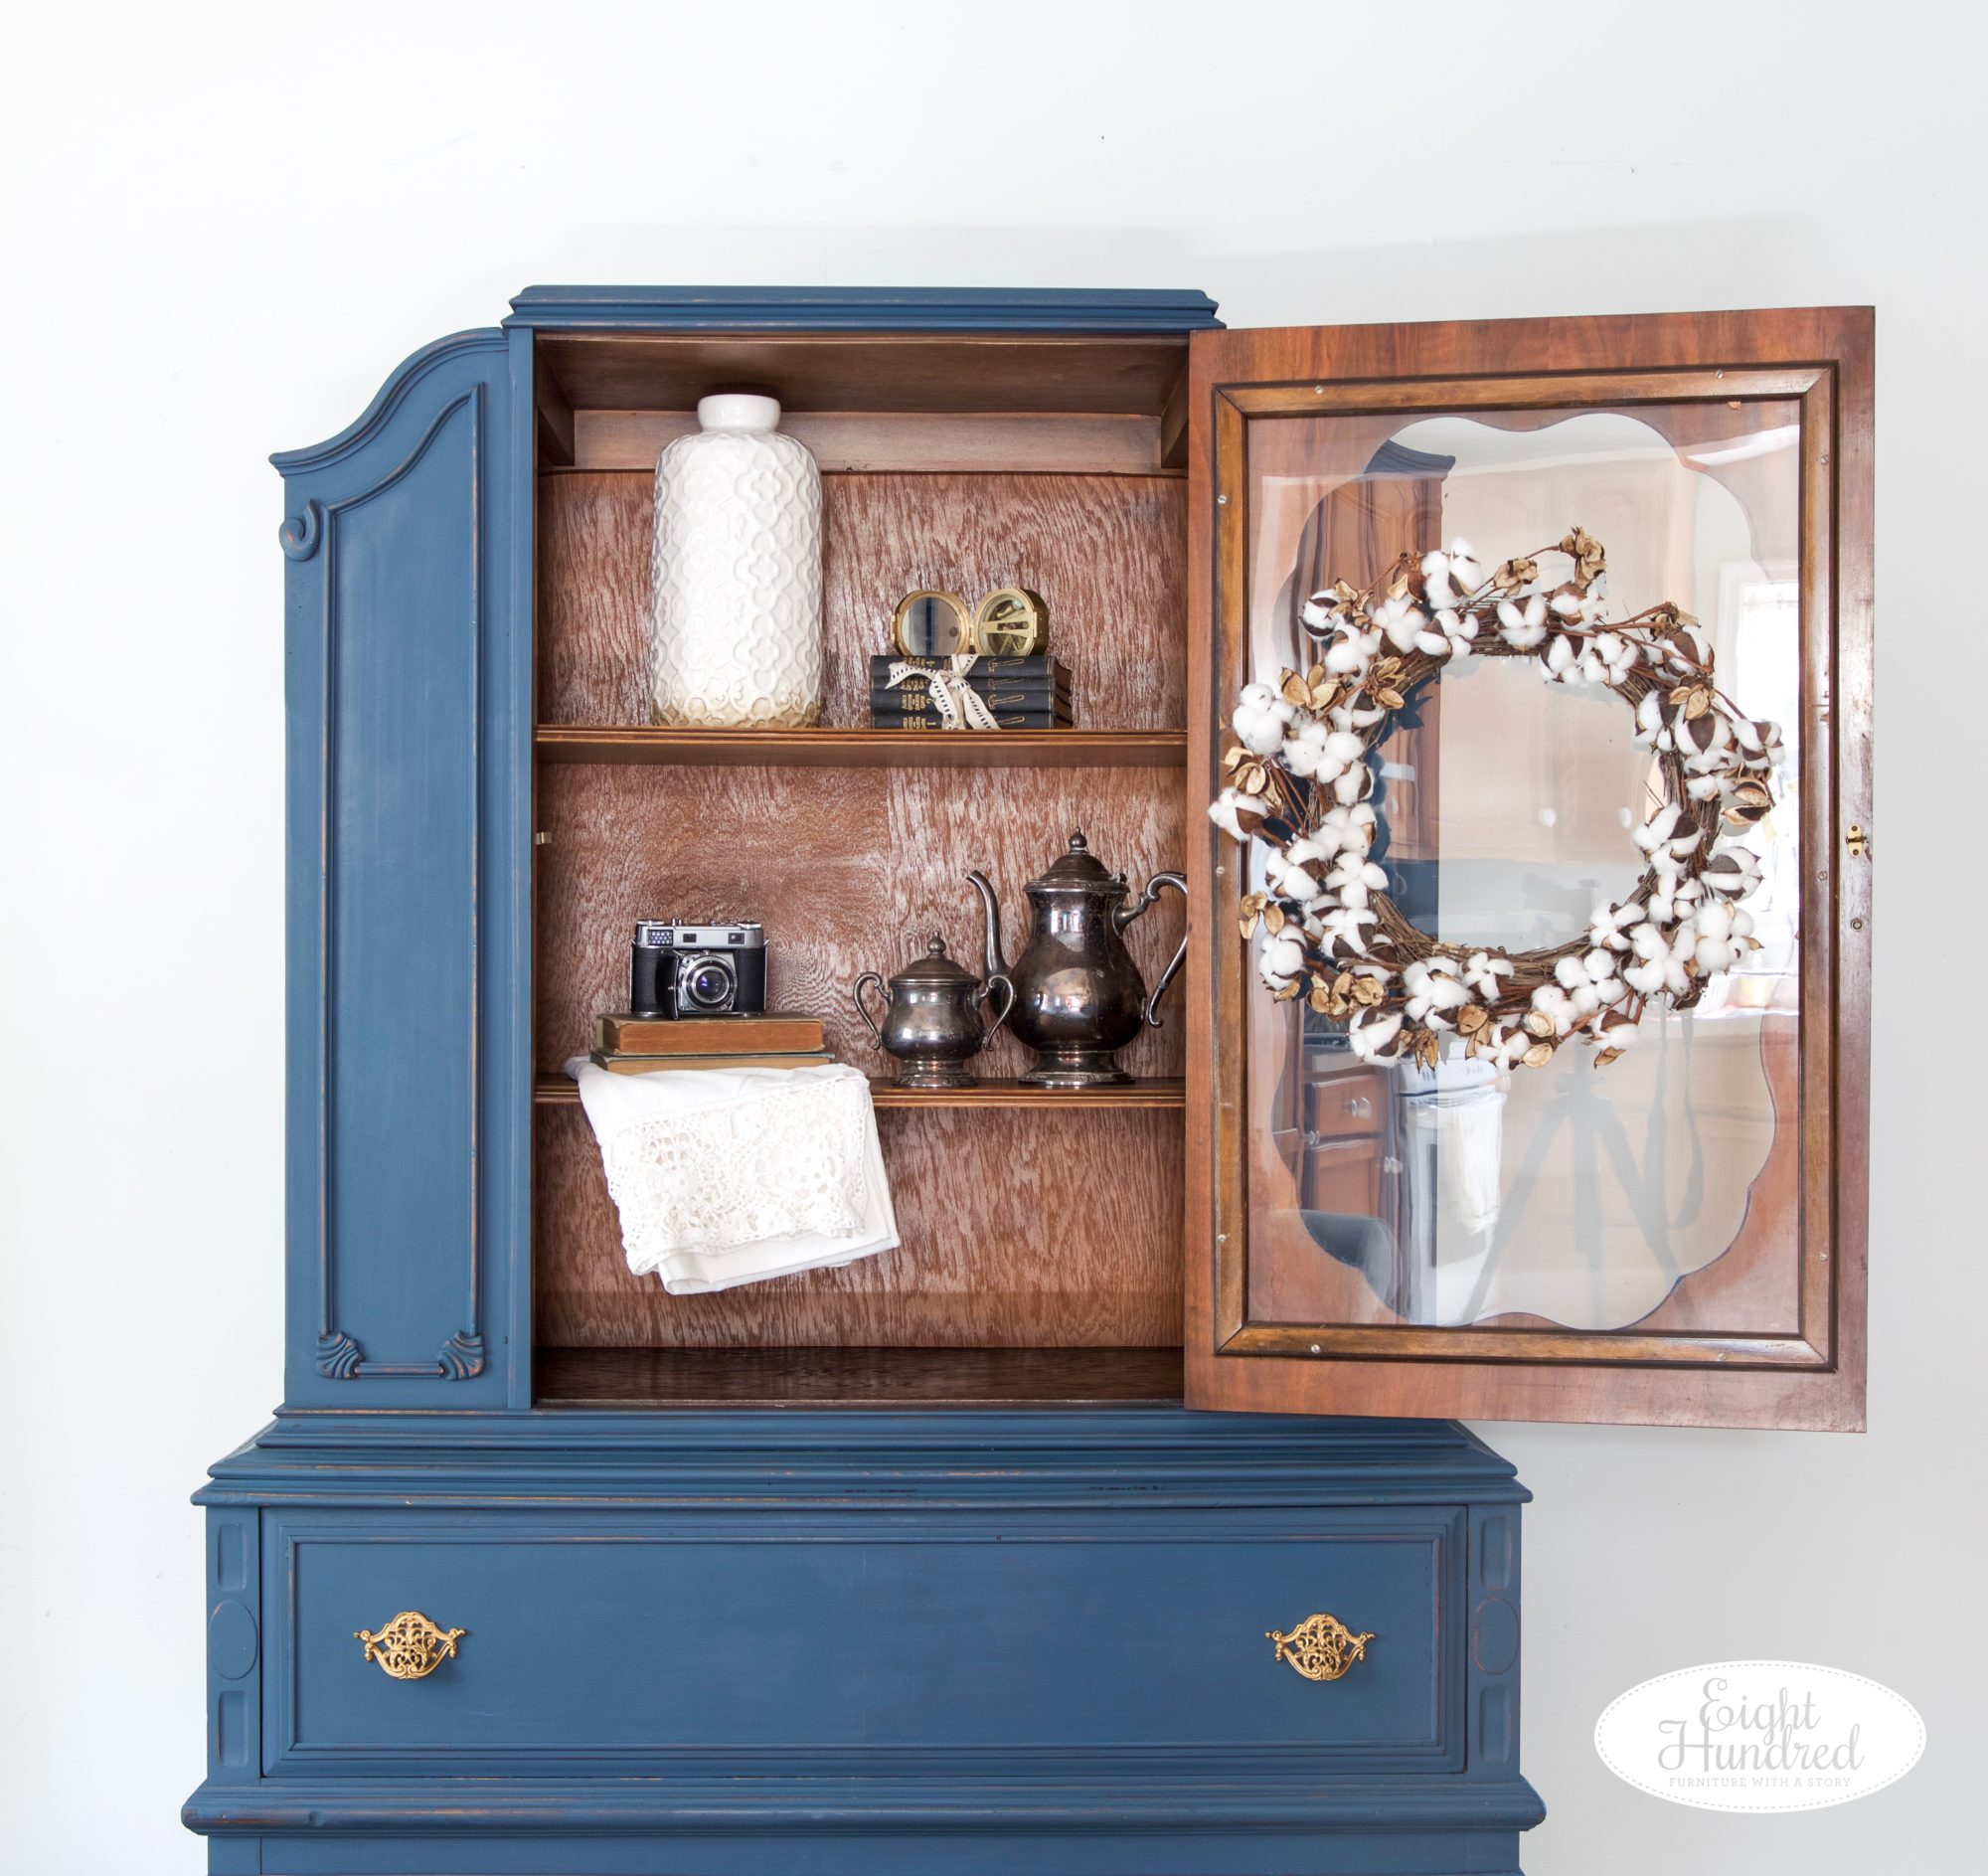 Staged inside of china cabinet painted in blend of Flow Blue and Artissimo by Miss Mustard Seed's Milk Paint